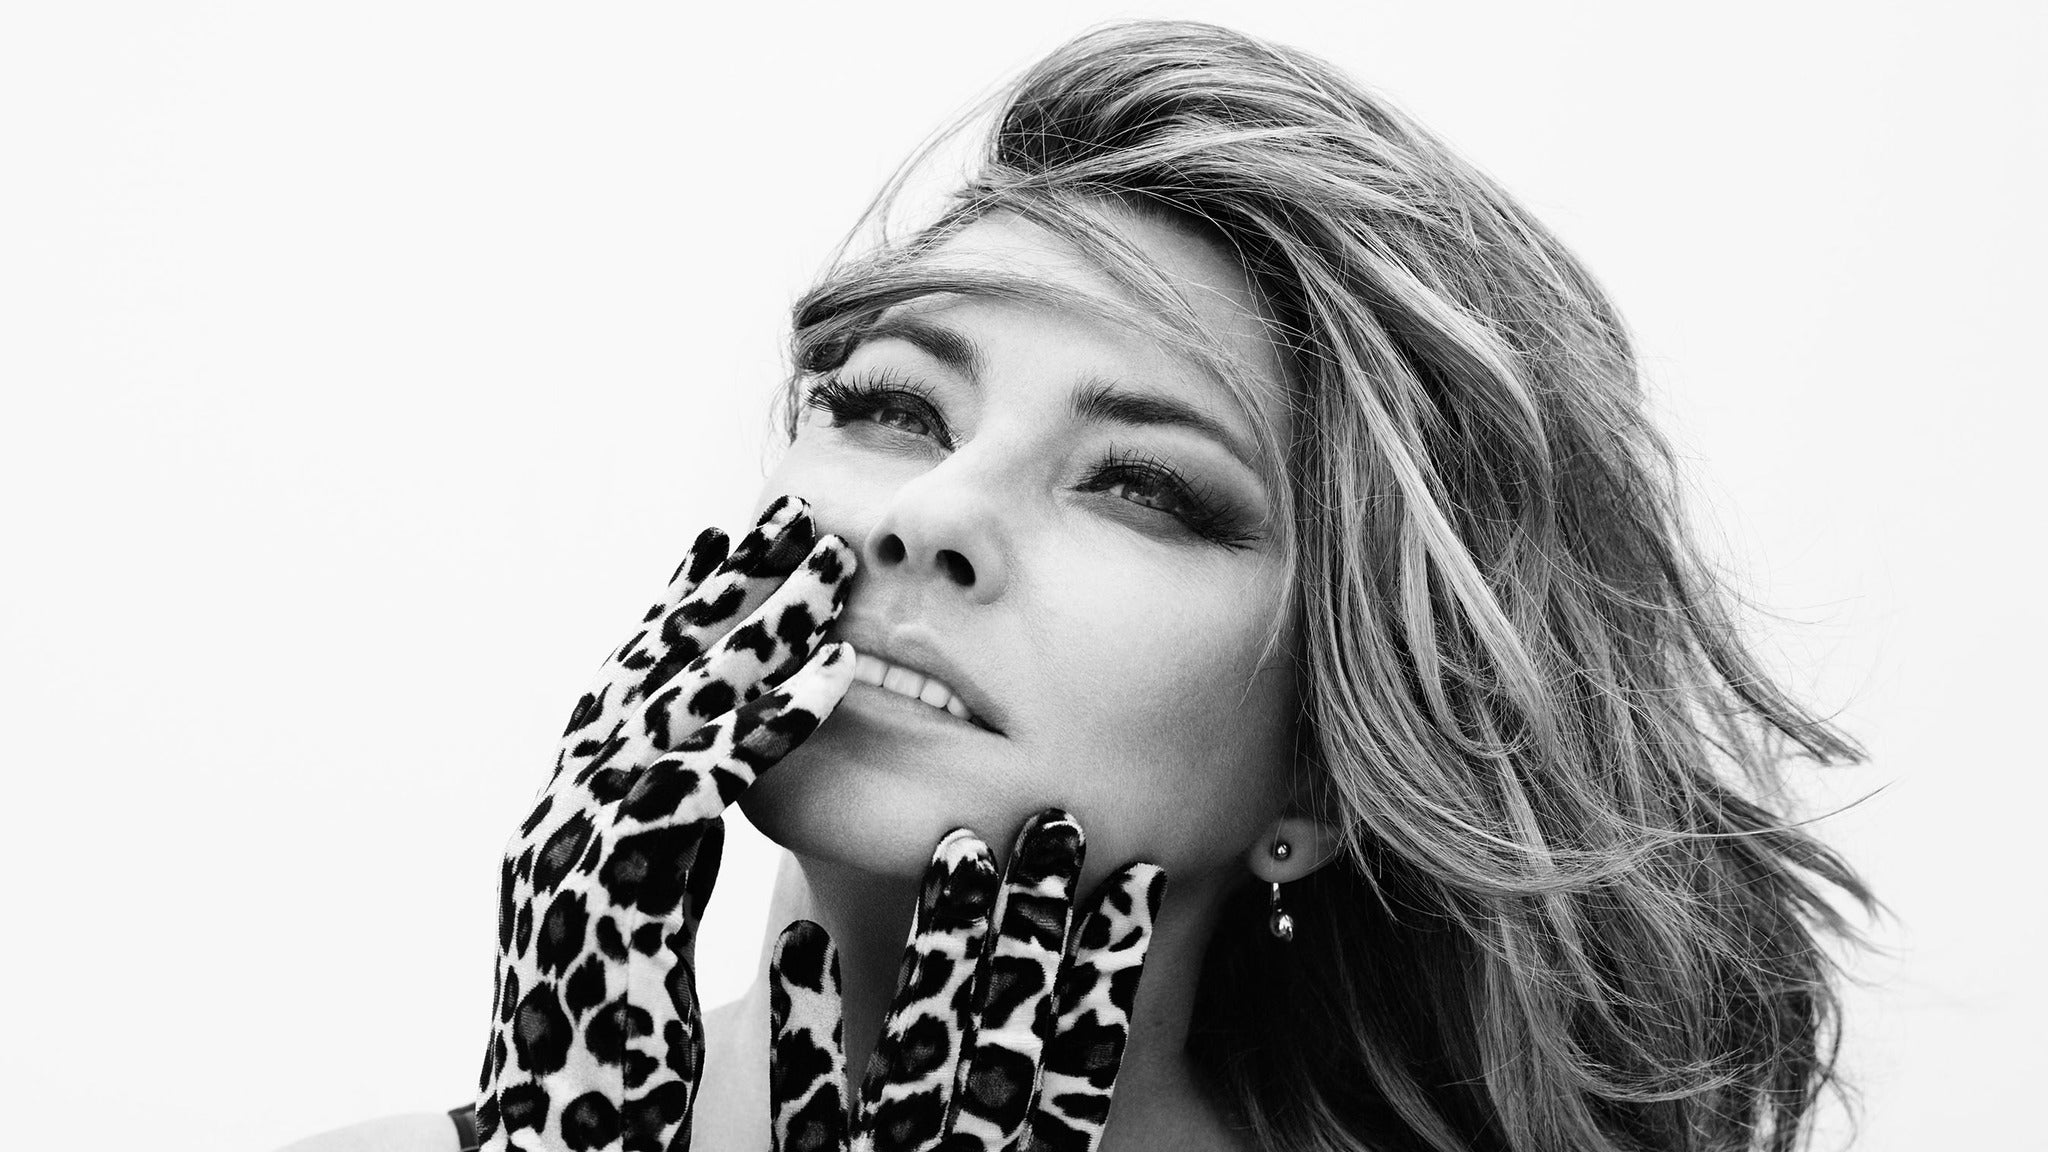 Shania Twain: NOW at Verizon Arena